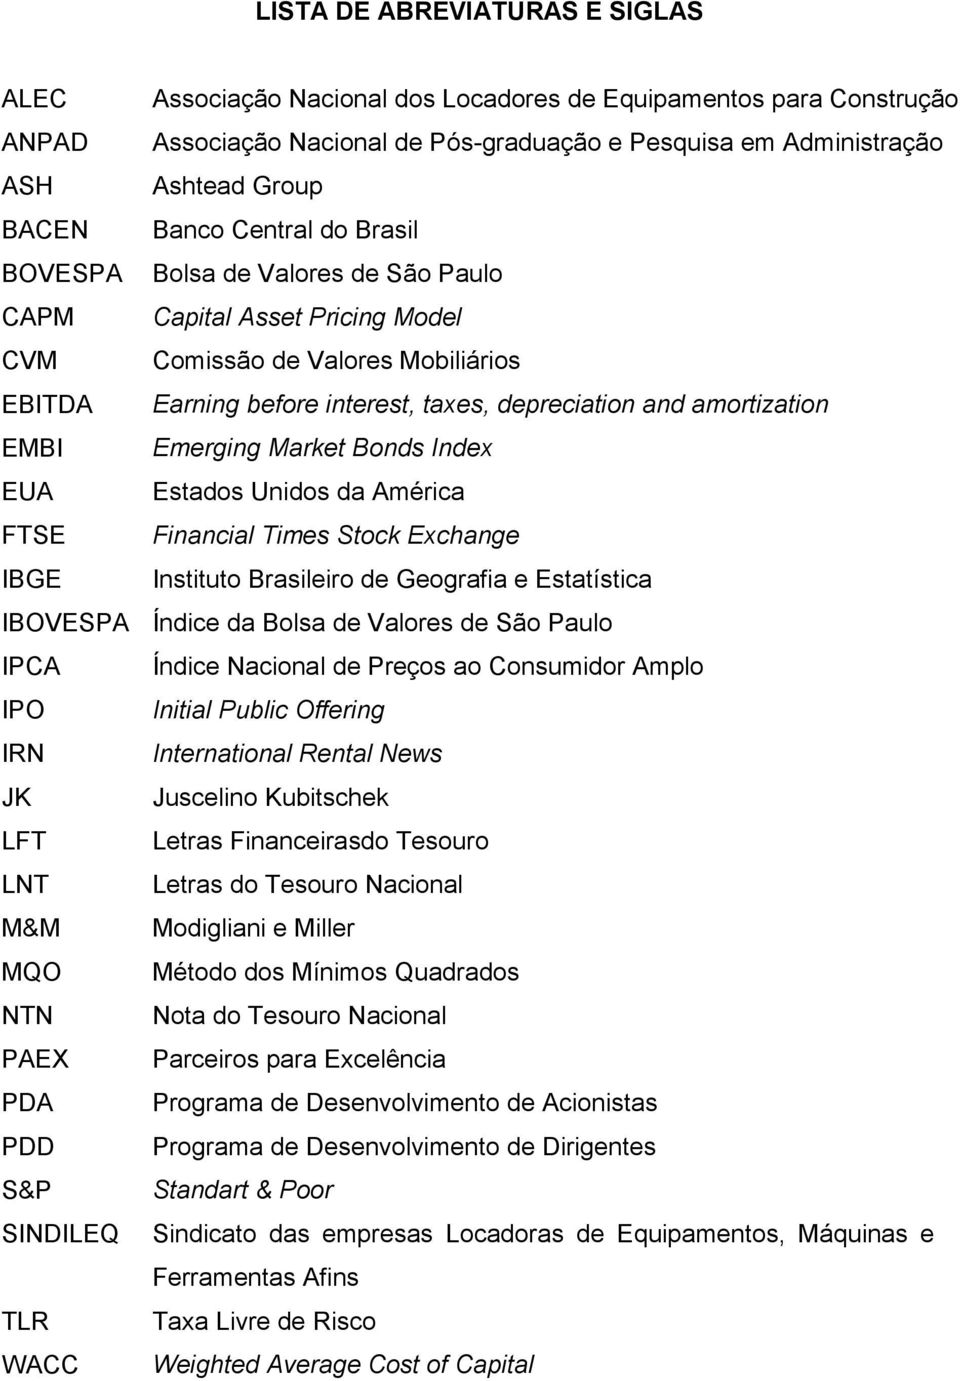 EMBI Emerging Market Bonds Index EUA Estados Unidos da América FTSE Financial Times Stock Exchange IBGE Instituto Brasileiro de Geografia e Estatística IBOVESPA Índice da Bolsa de Valores de São